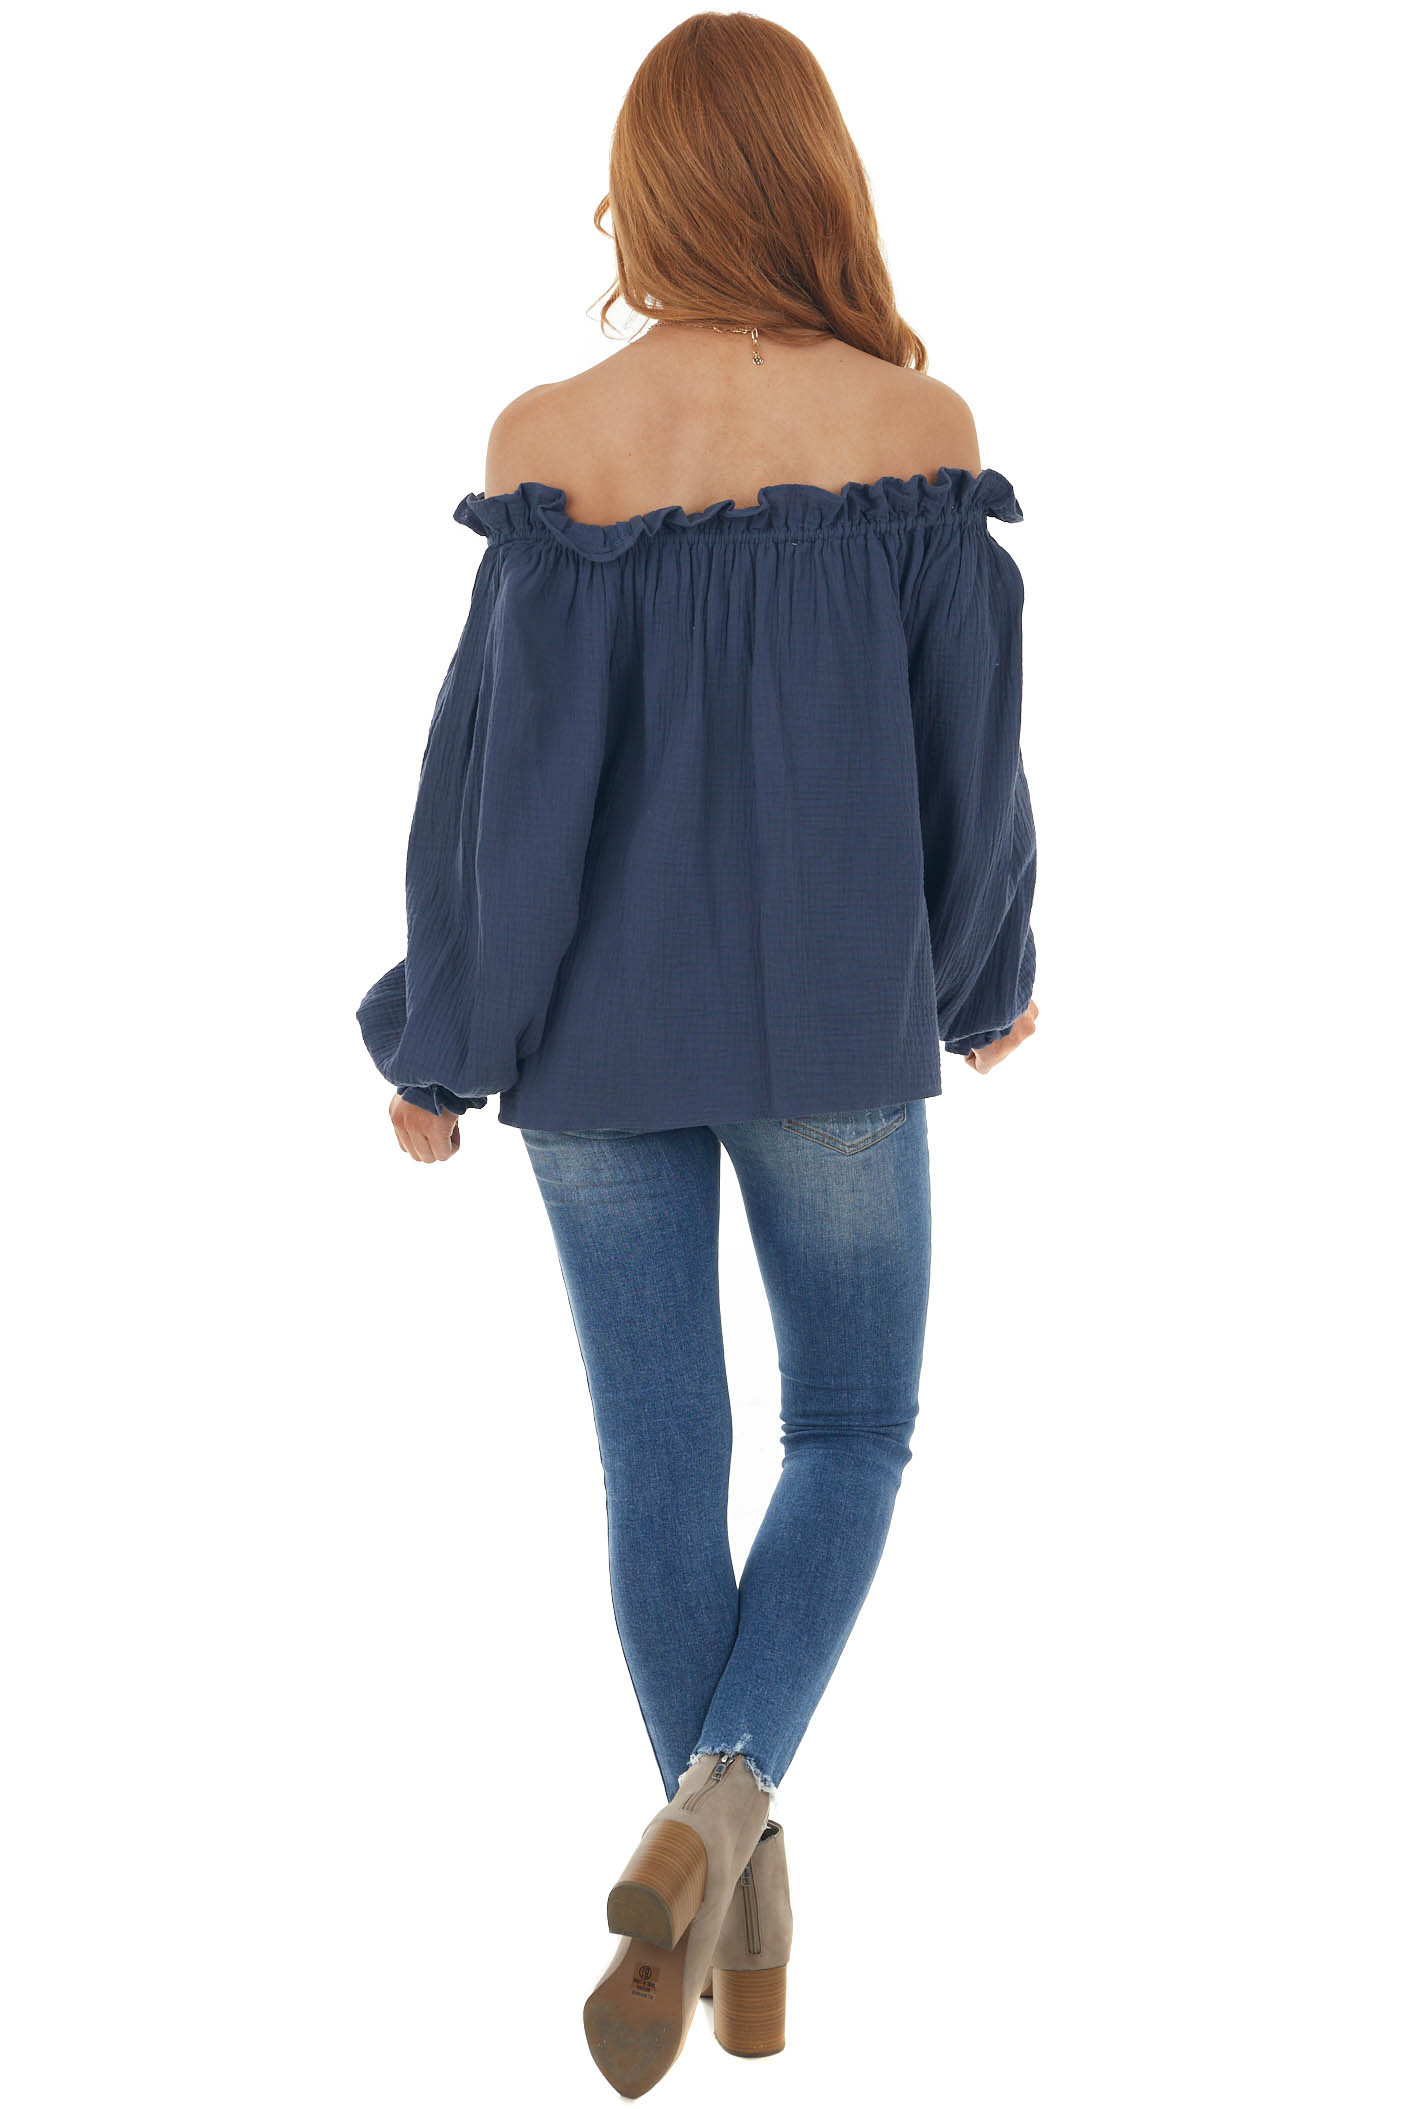 Navy Textured Off Shoulder Frill Blouse